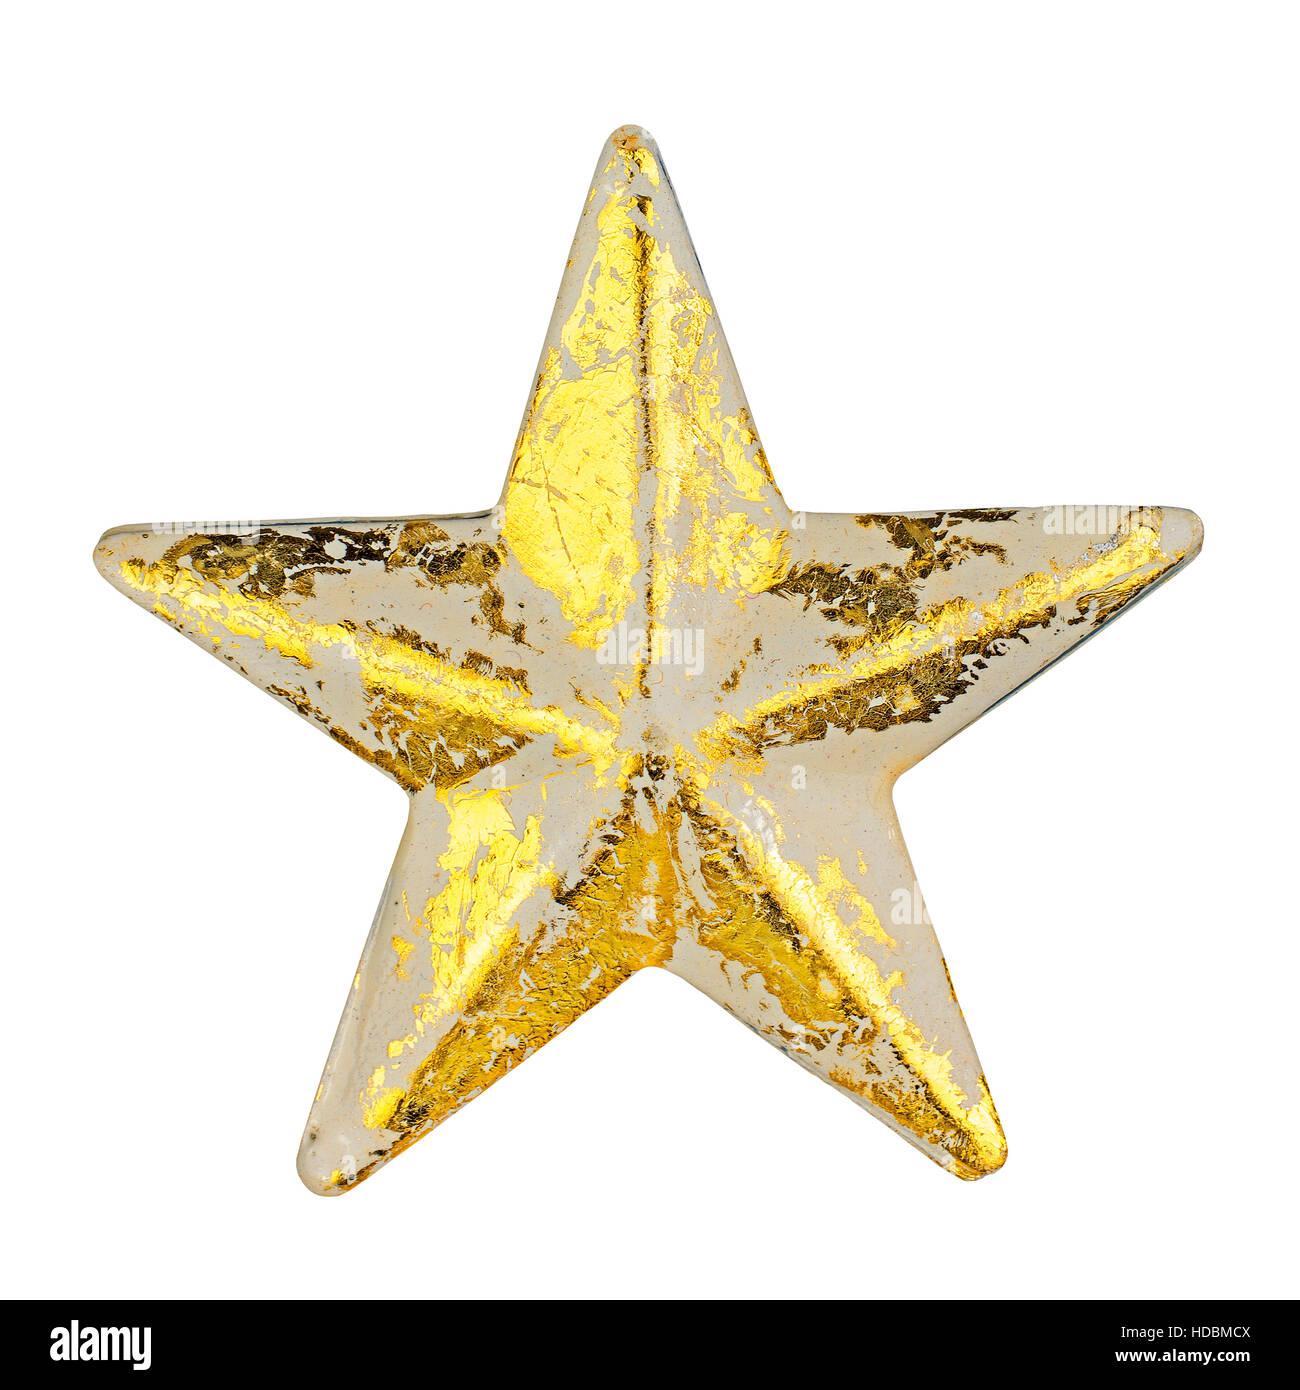 Golden christmas star ornament with peeling color patina isolated on white - Stock Image